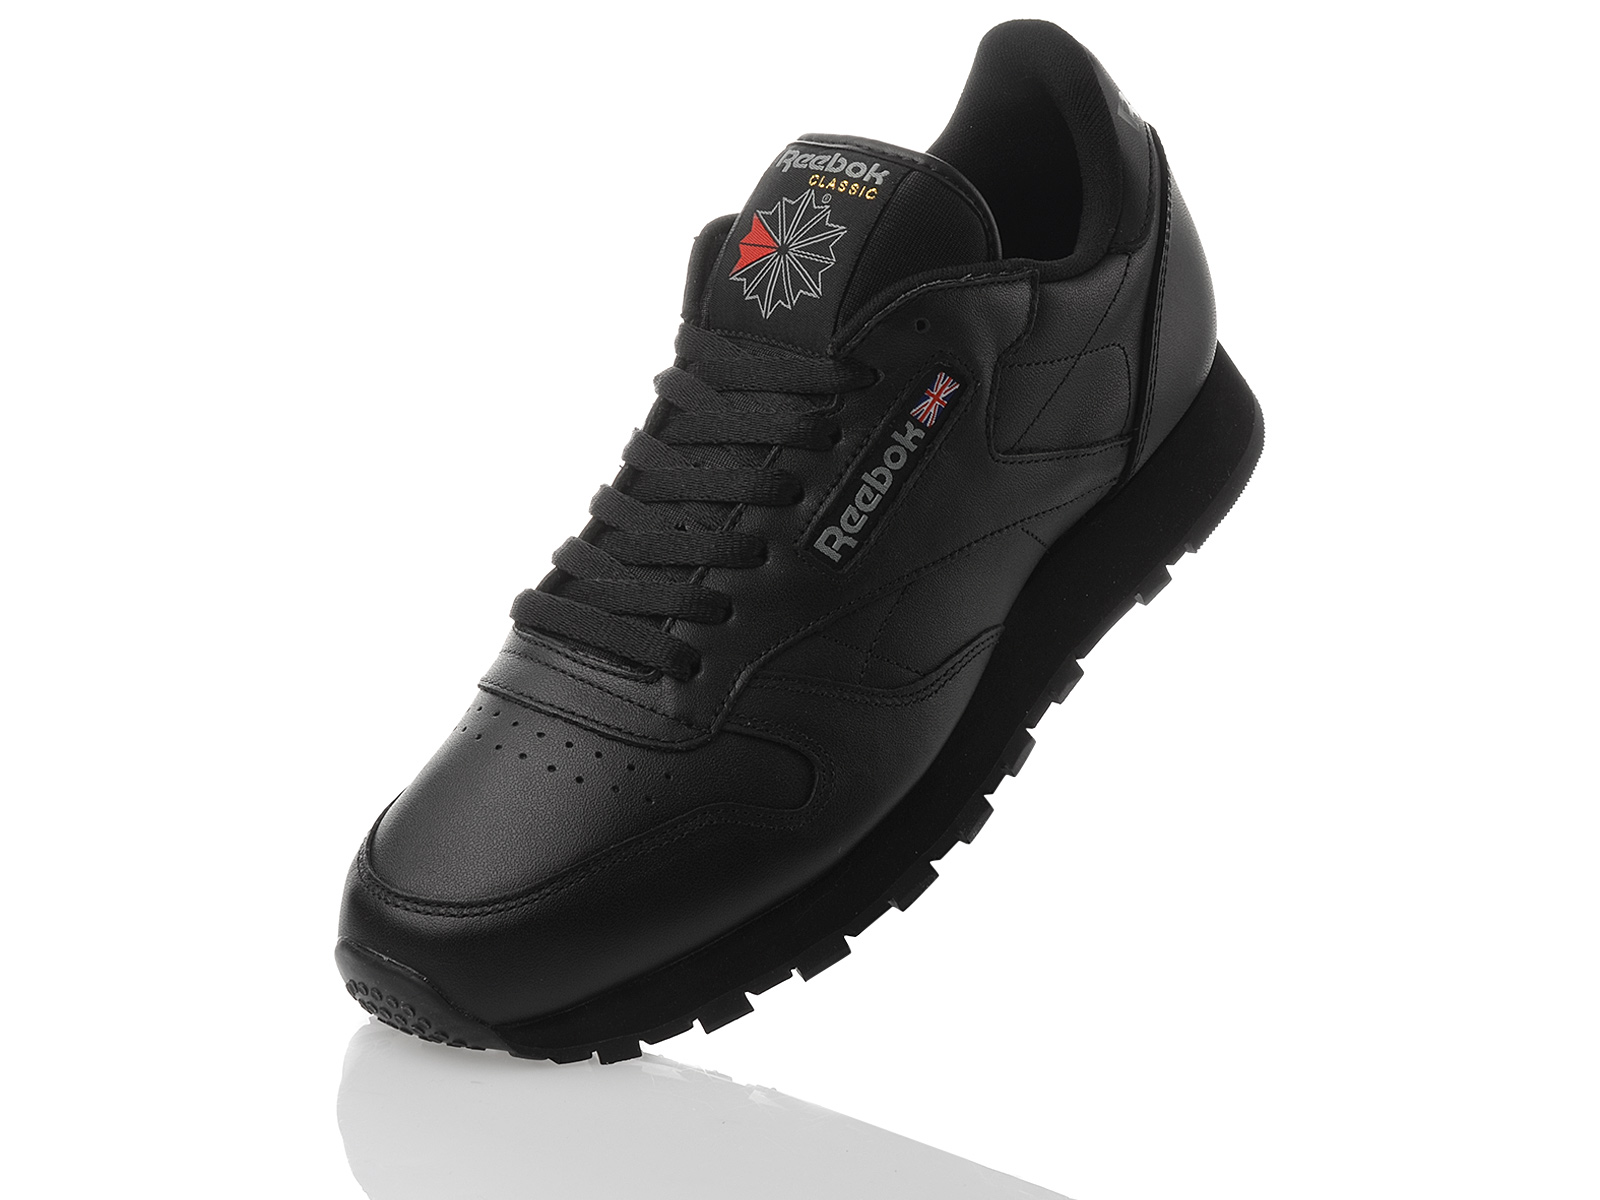 d844c649 BUTY REEBOK CLASSIC LEATHER / 2267 / NEW / r.50 - 7426794701 ...